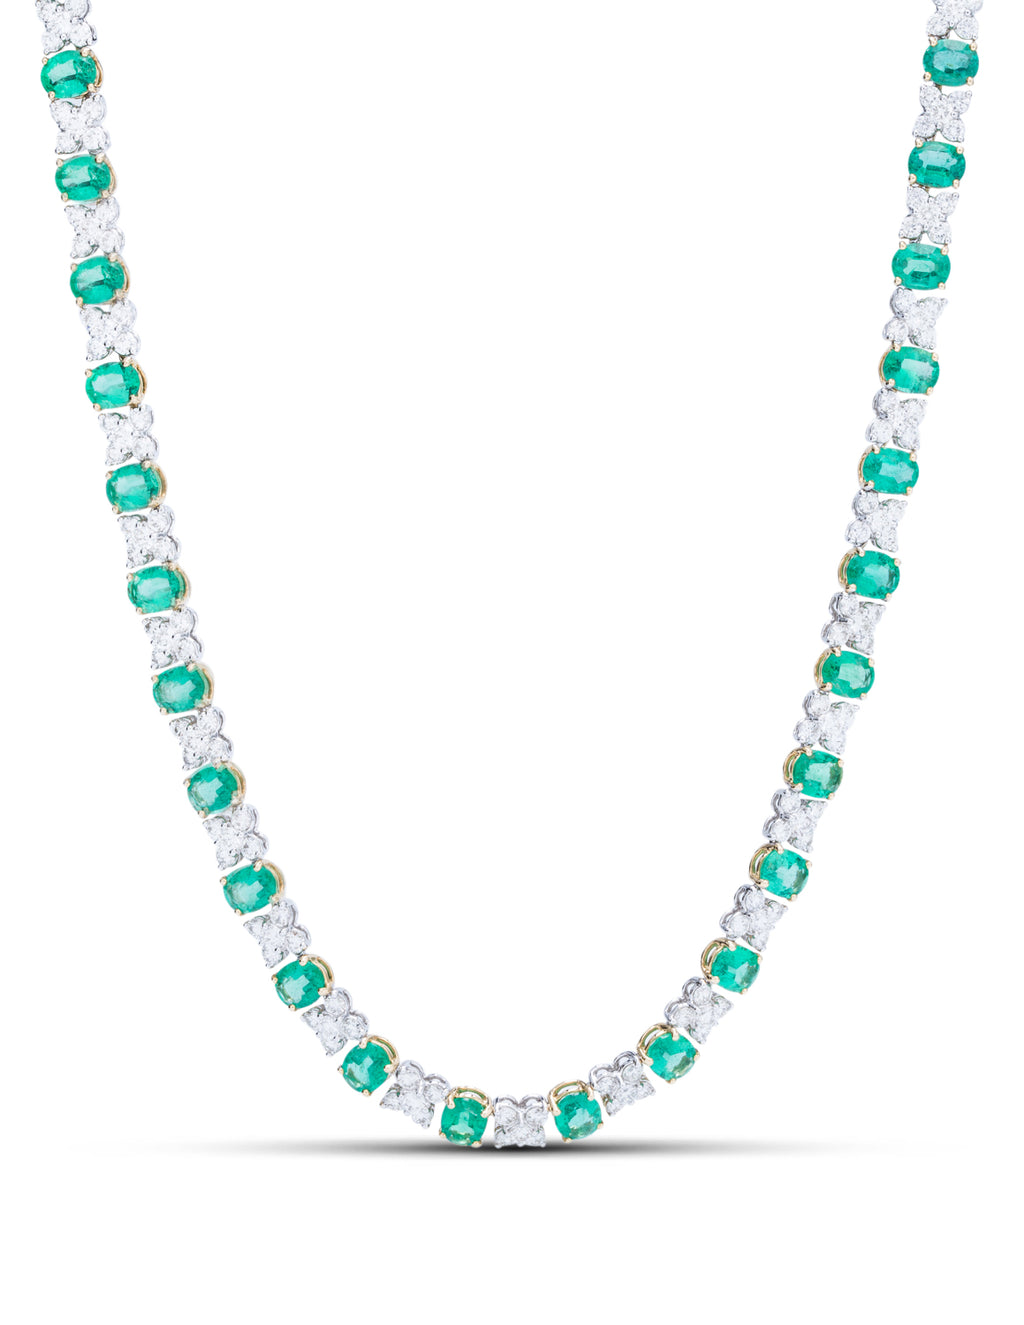 Emerald and Diamond Necklace - Charles Koll Jewellers